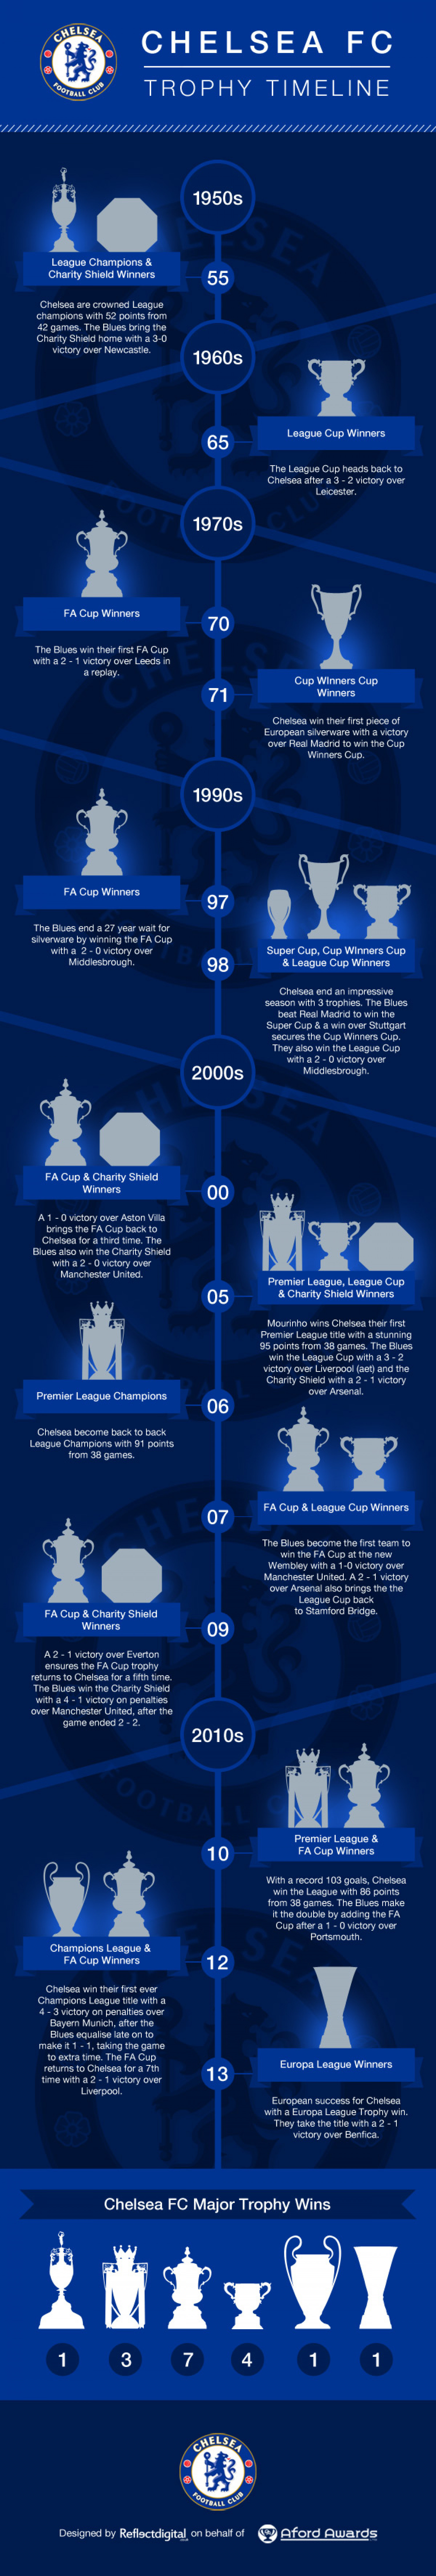 Chelsea FC Trophy Timeline Infographic